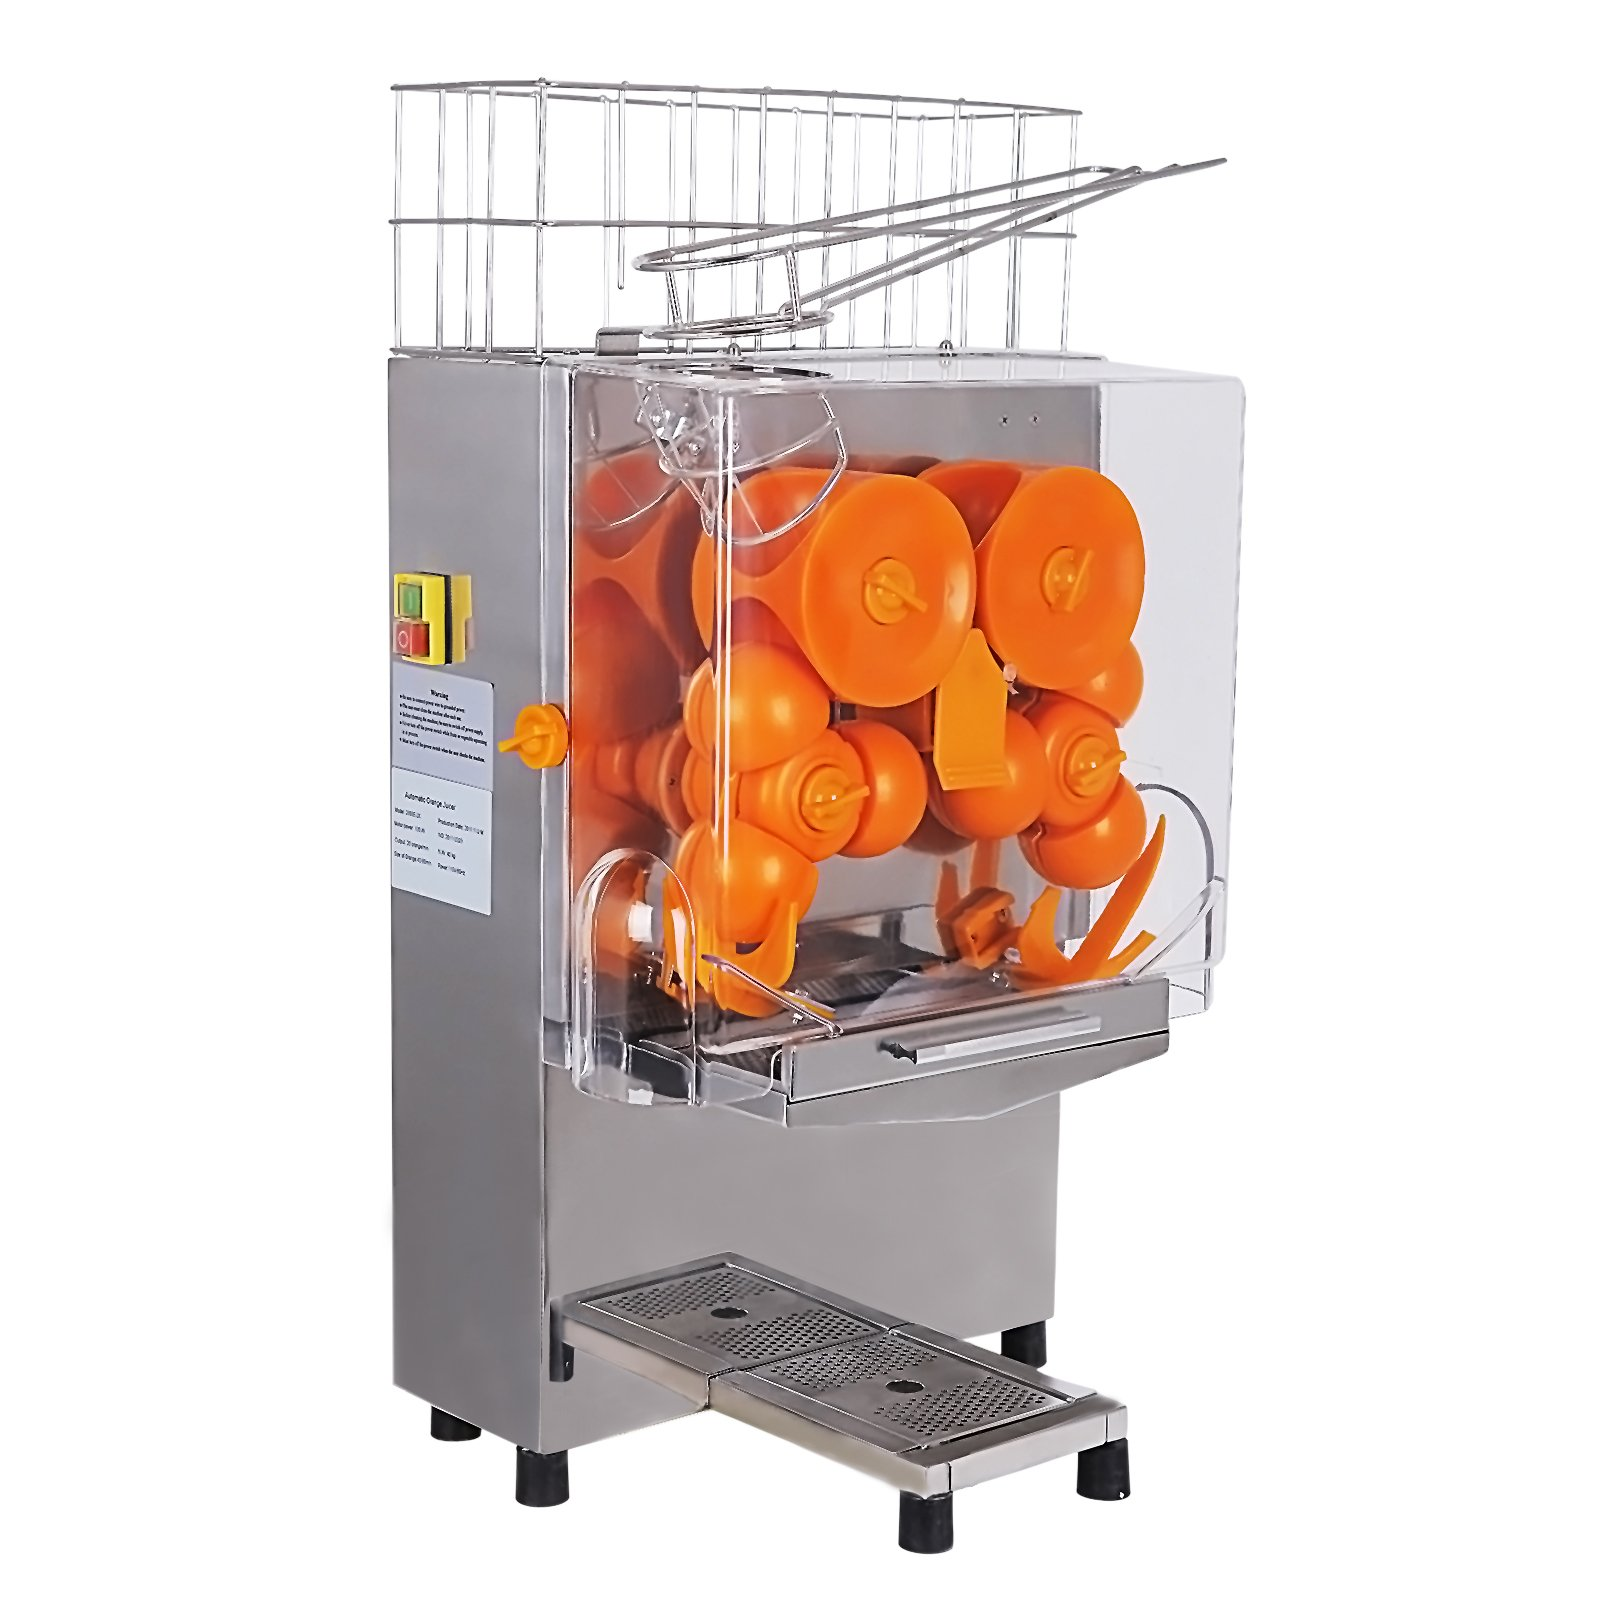 SUNCOO Electric Orange Squeezer Juice Extractor Lemon Lime Citrus Machine for Commercial Use-Auto Feed,Floor Standing,20 Oranges / Minute,Stainless Steel Tank